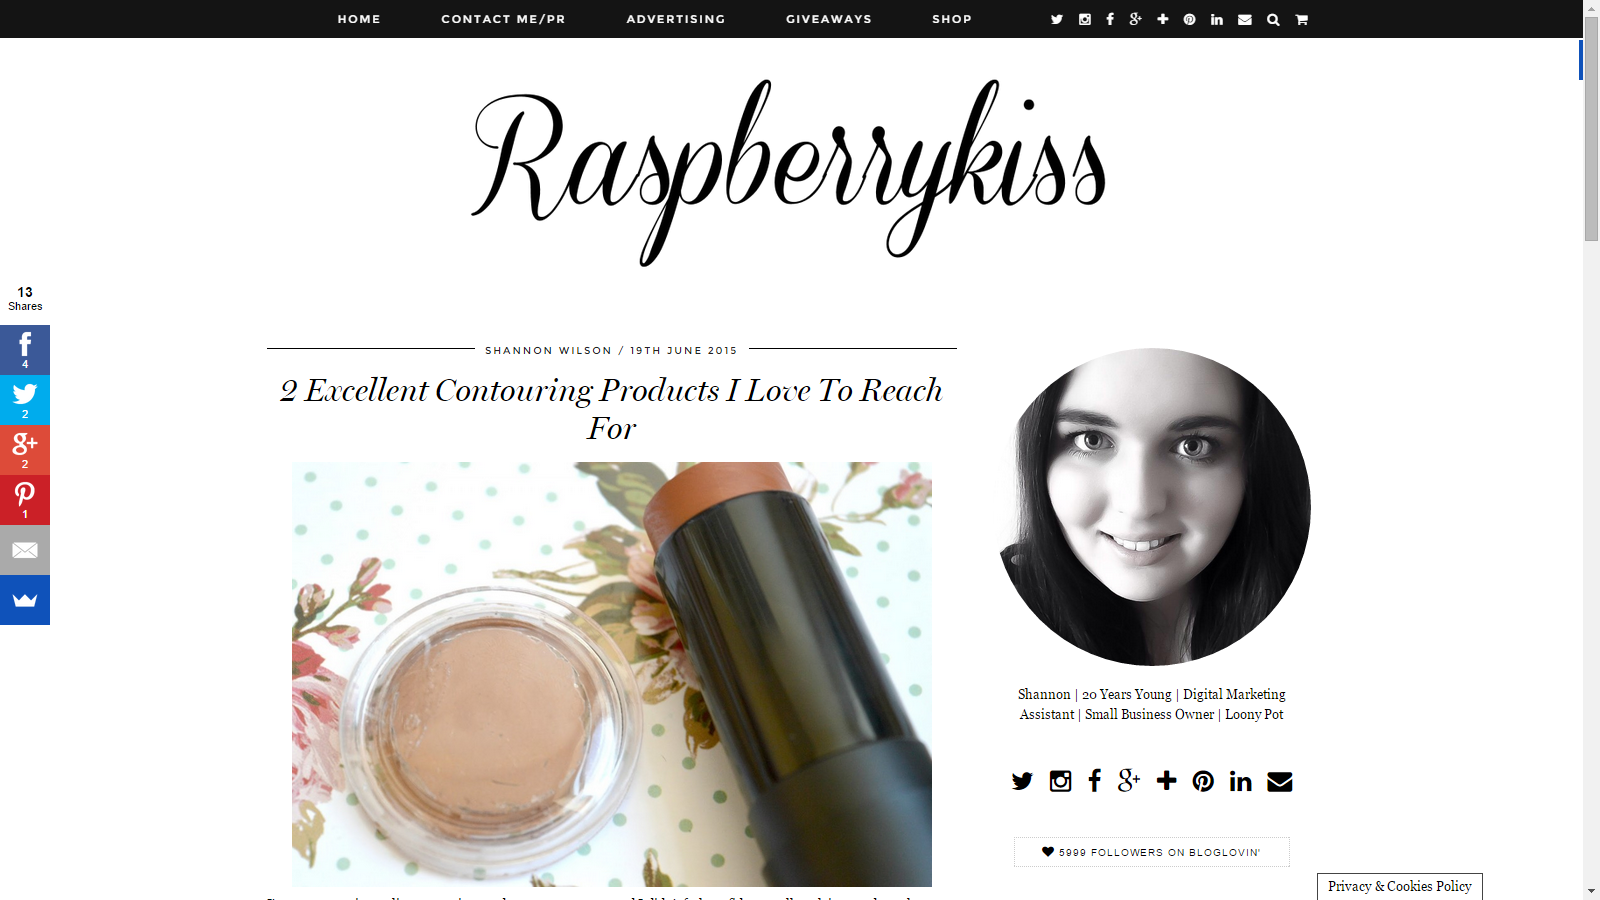 Raspberrykiss Uses Veil Cover Cream To Contour